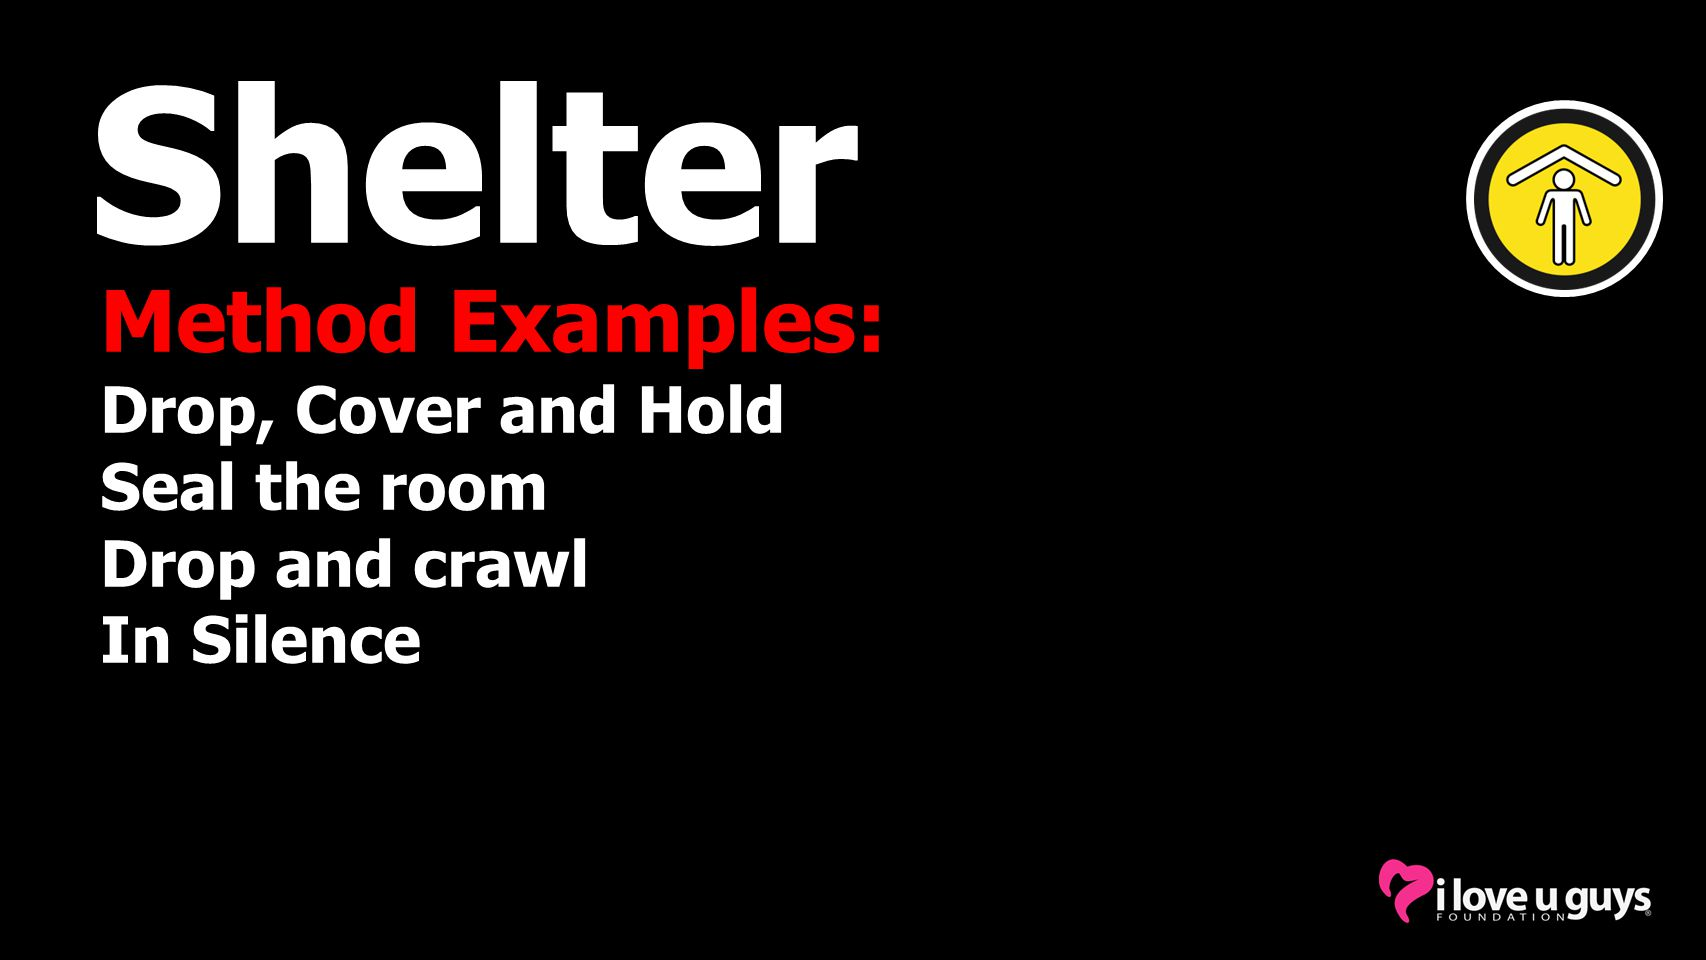 Shelter Method Examples: Drop, Cover and Hold Seal the room